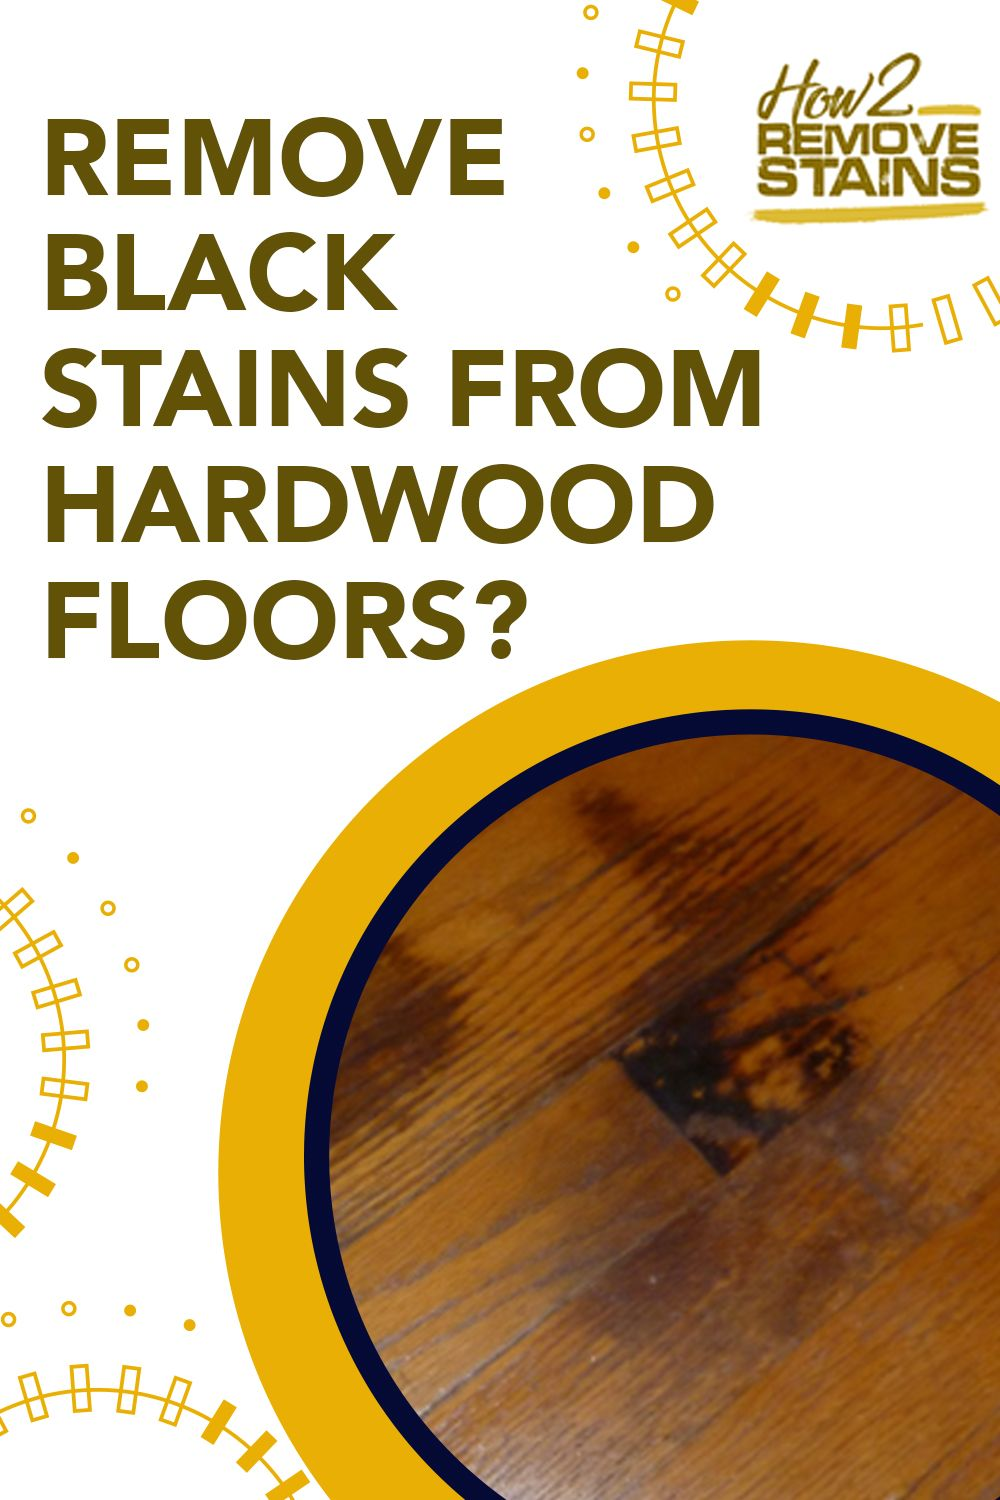 How to remove black stains from hardwood floors in 2020